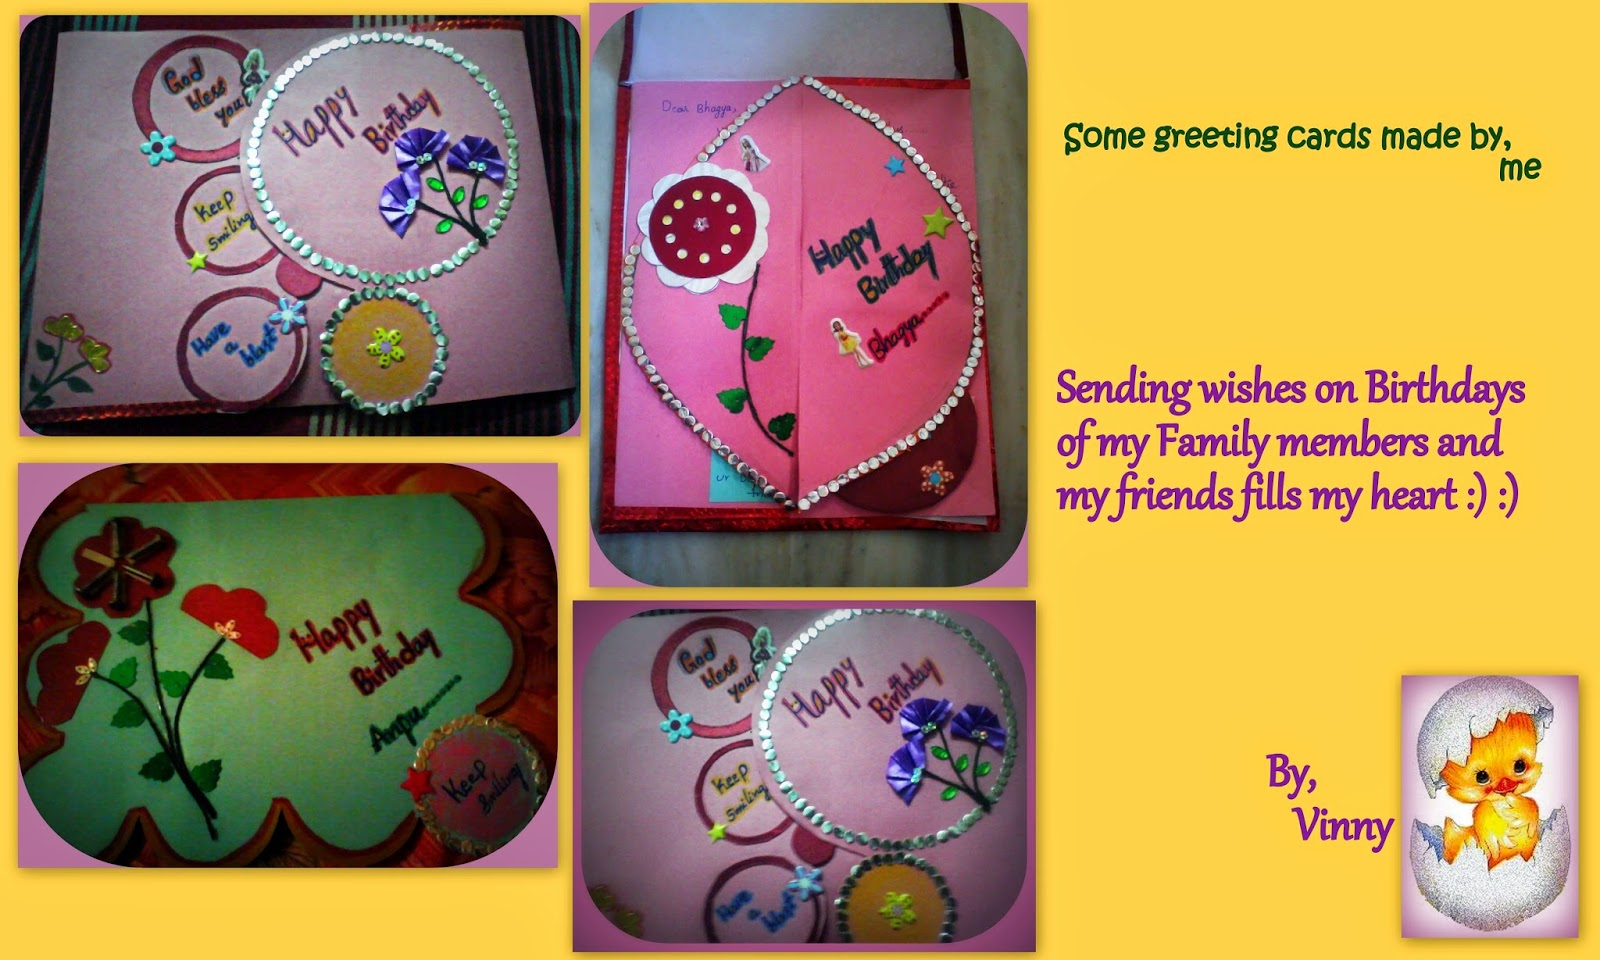 Greeting cards made by me